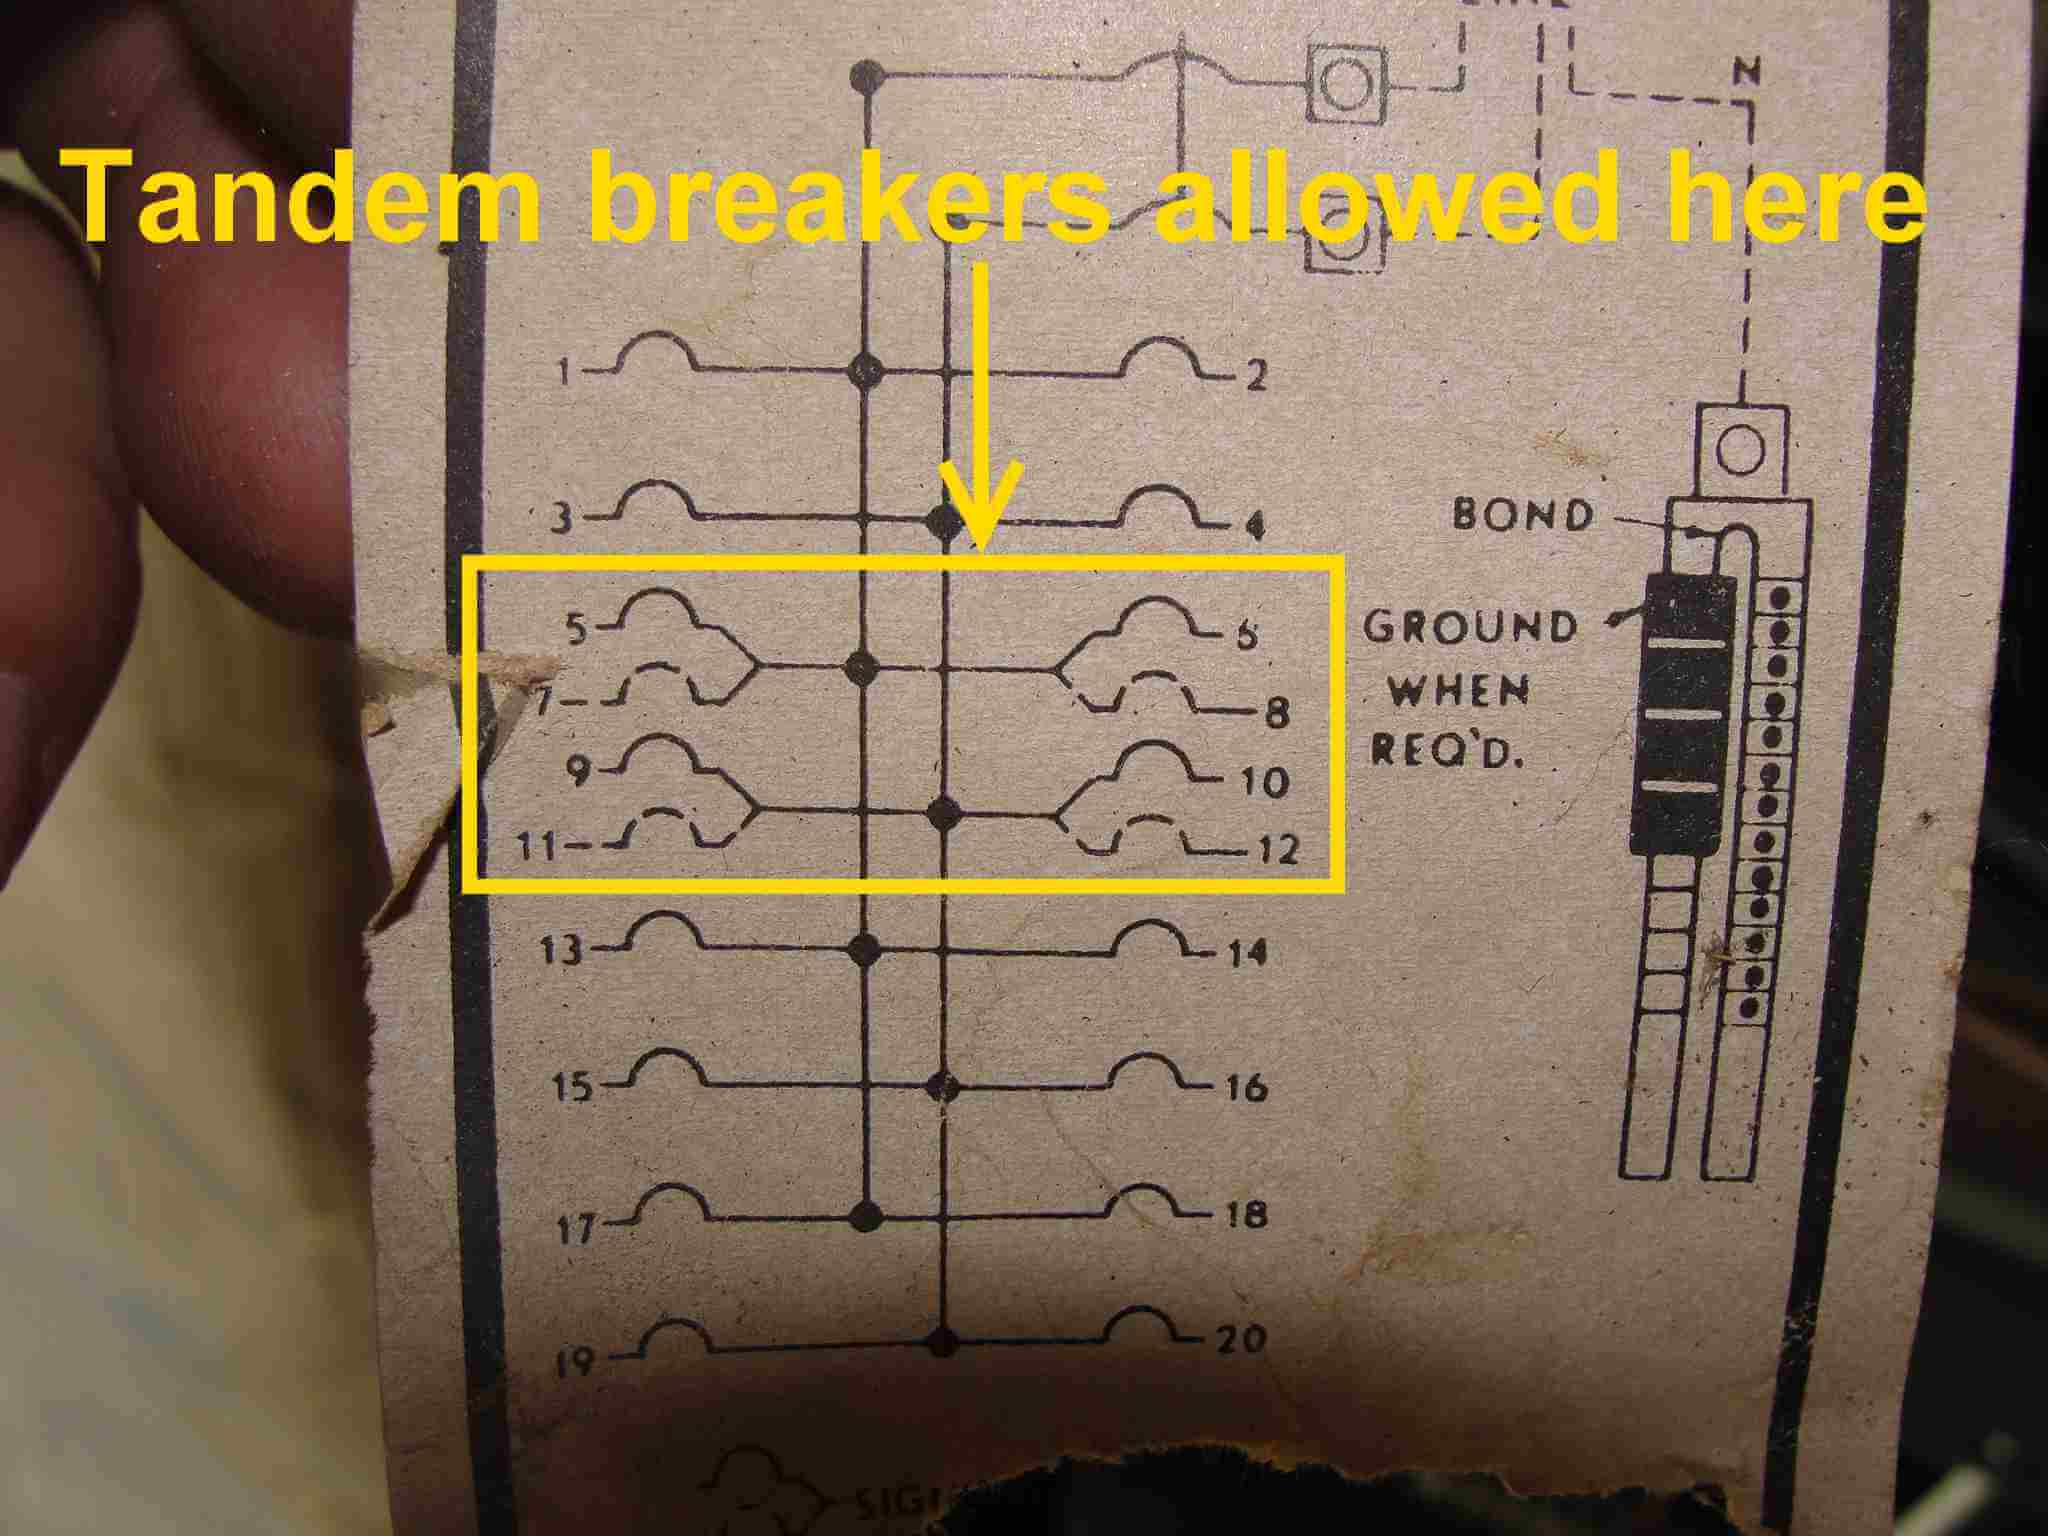 How To Know When Tandem Circuit Breakers Can Be Used Aka Cheater 100 Amp For Electric Furnace Wiring Diagram Panelboard 2